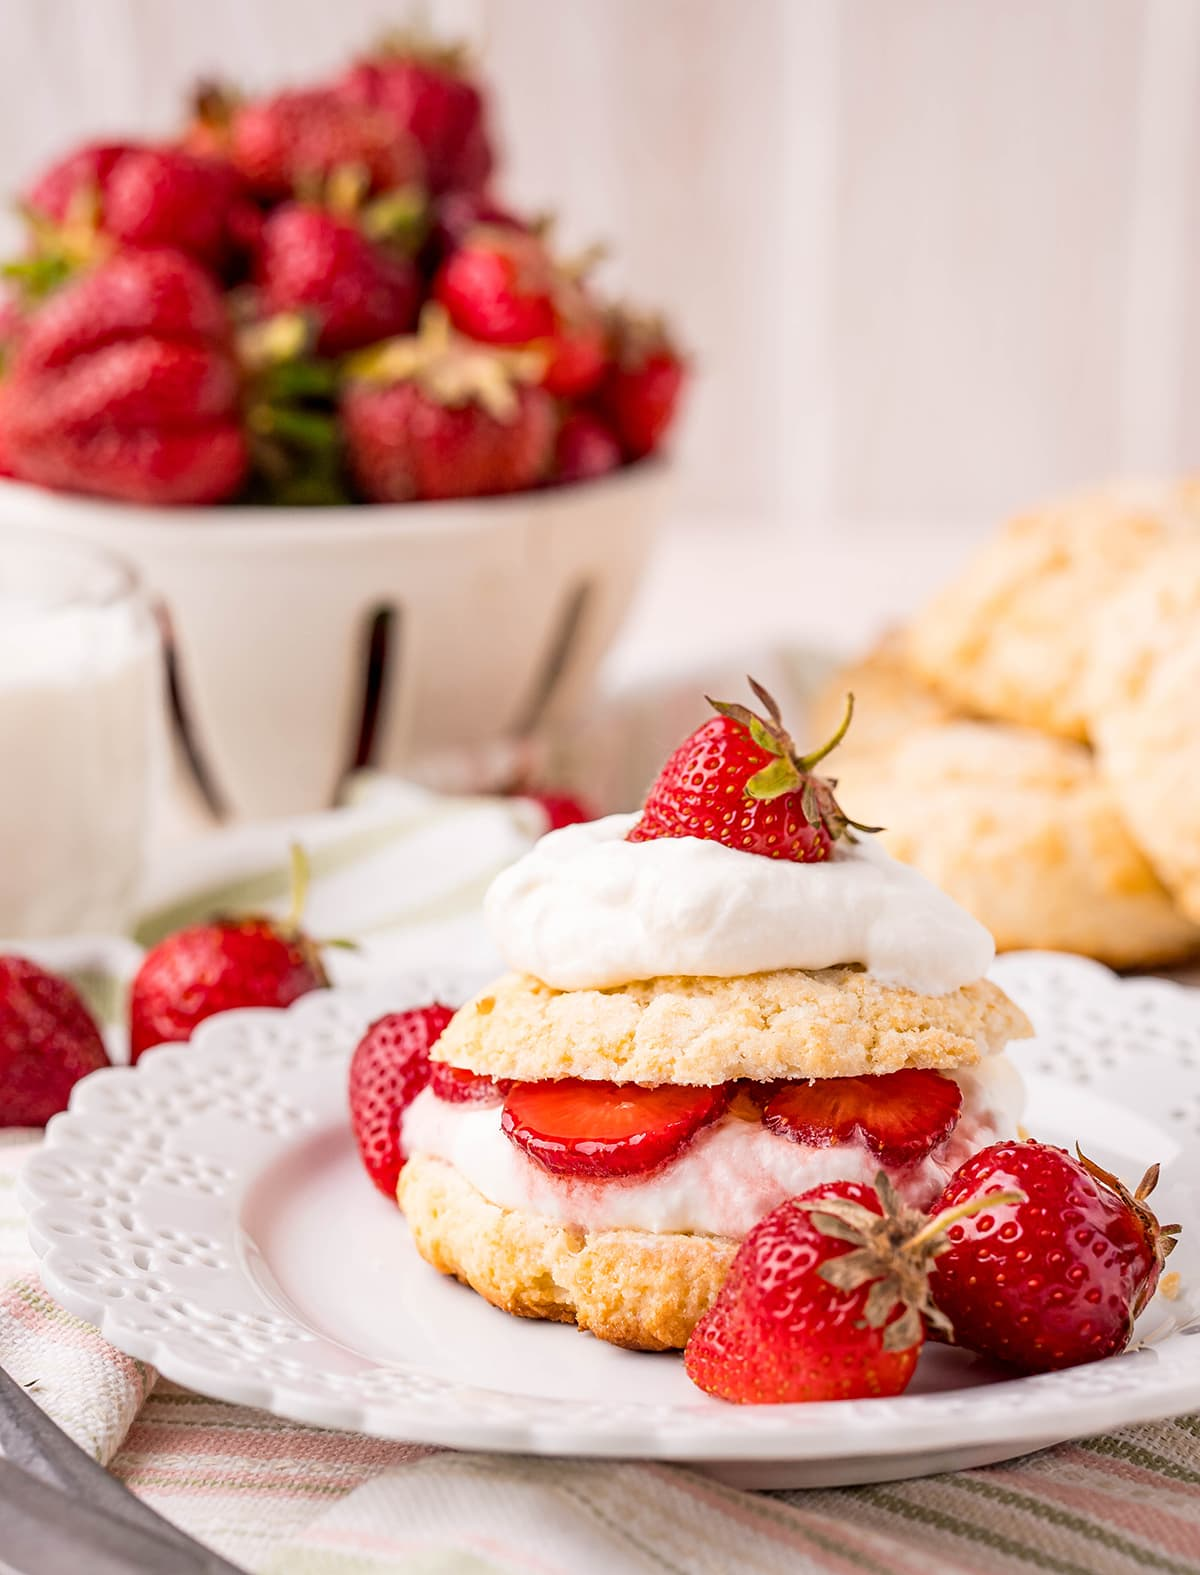 A strawberry shortcake on a plate, with a sweet biscuit, whipped cream, and strawberries. With a bowl of strawberries in the back, and a pile of biscuits.